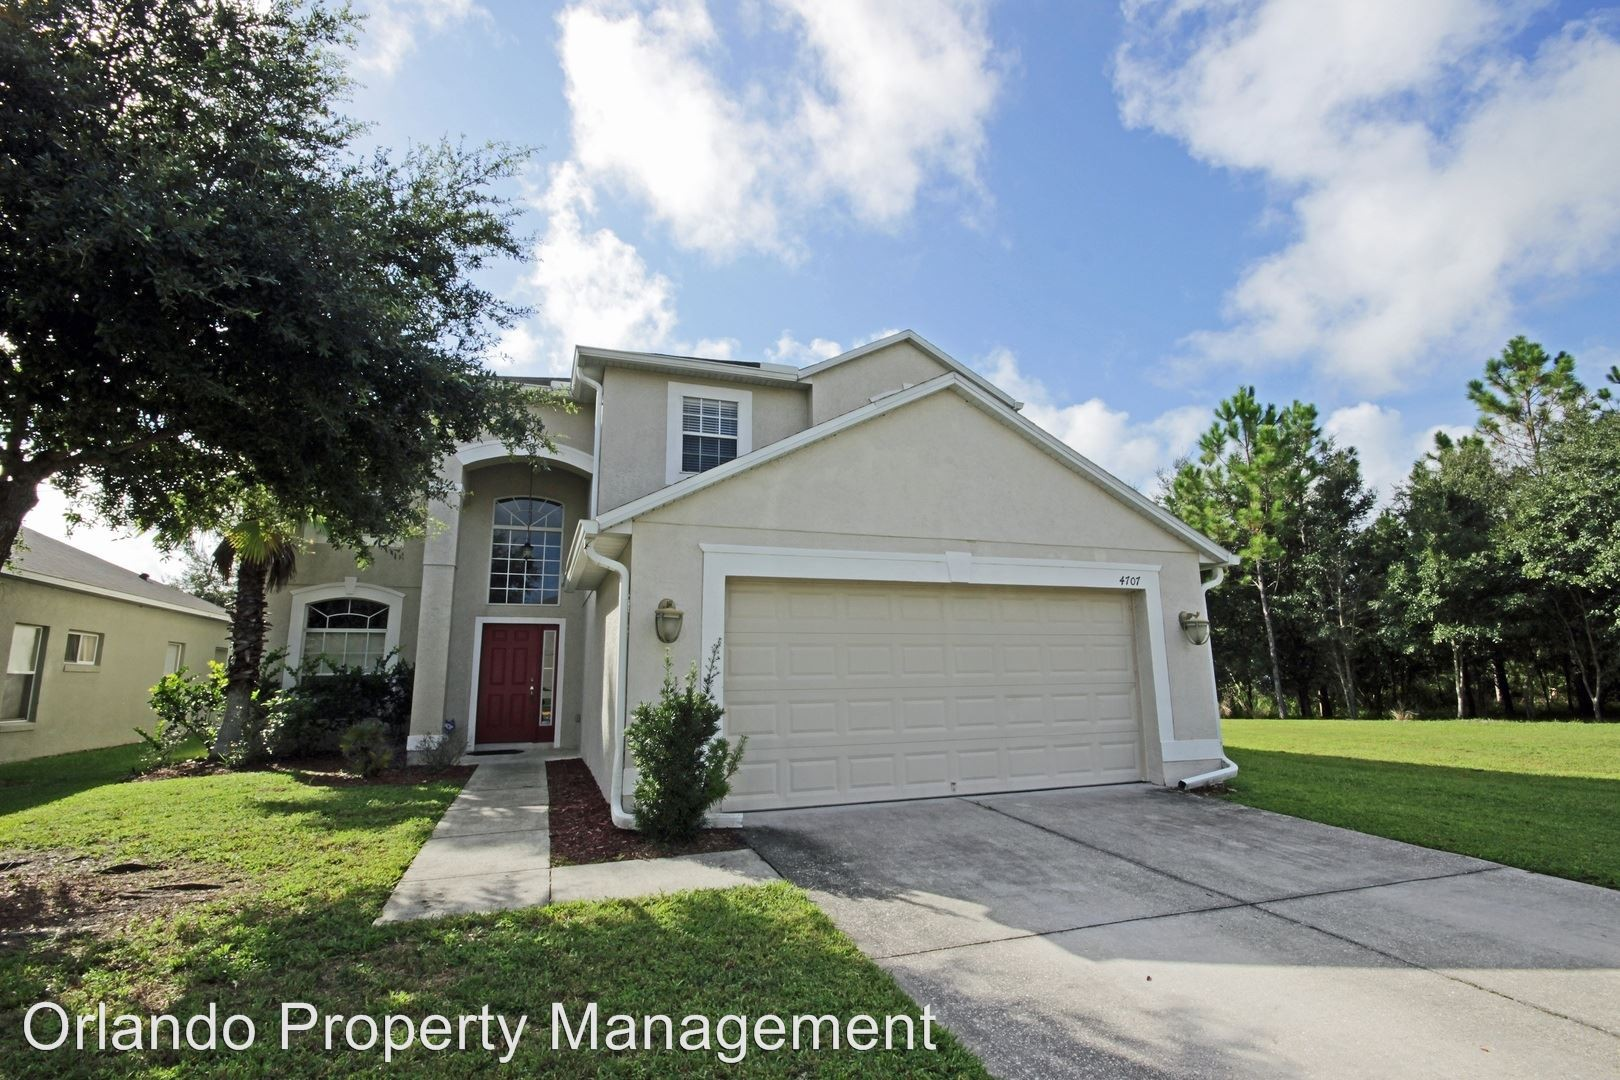 4707 northern dancer way orlando fl 32826 4 bedroom - Four bedroom apartments in orlando fl ...